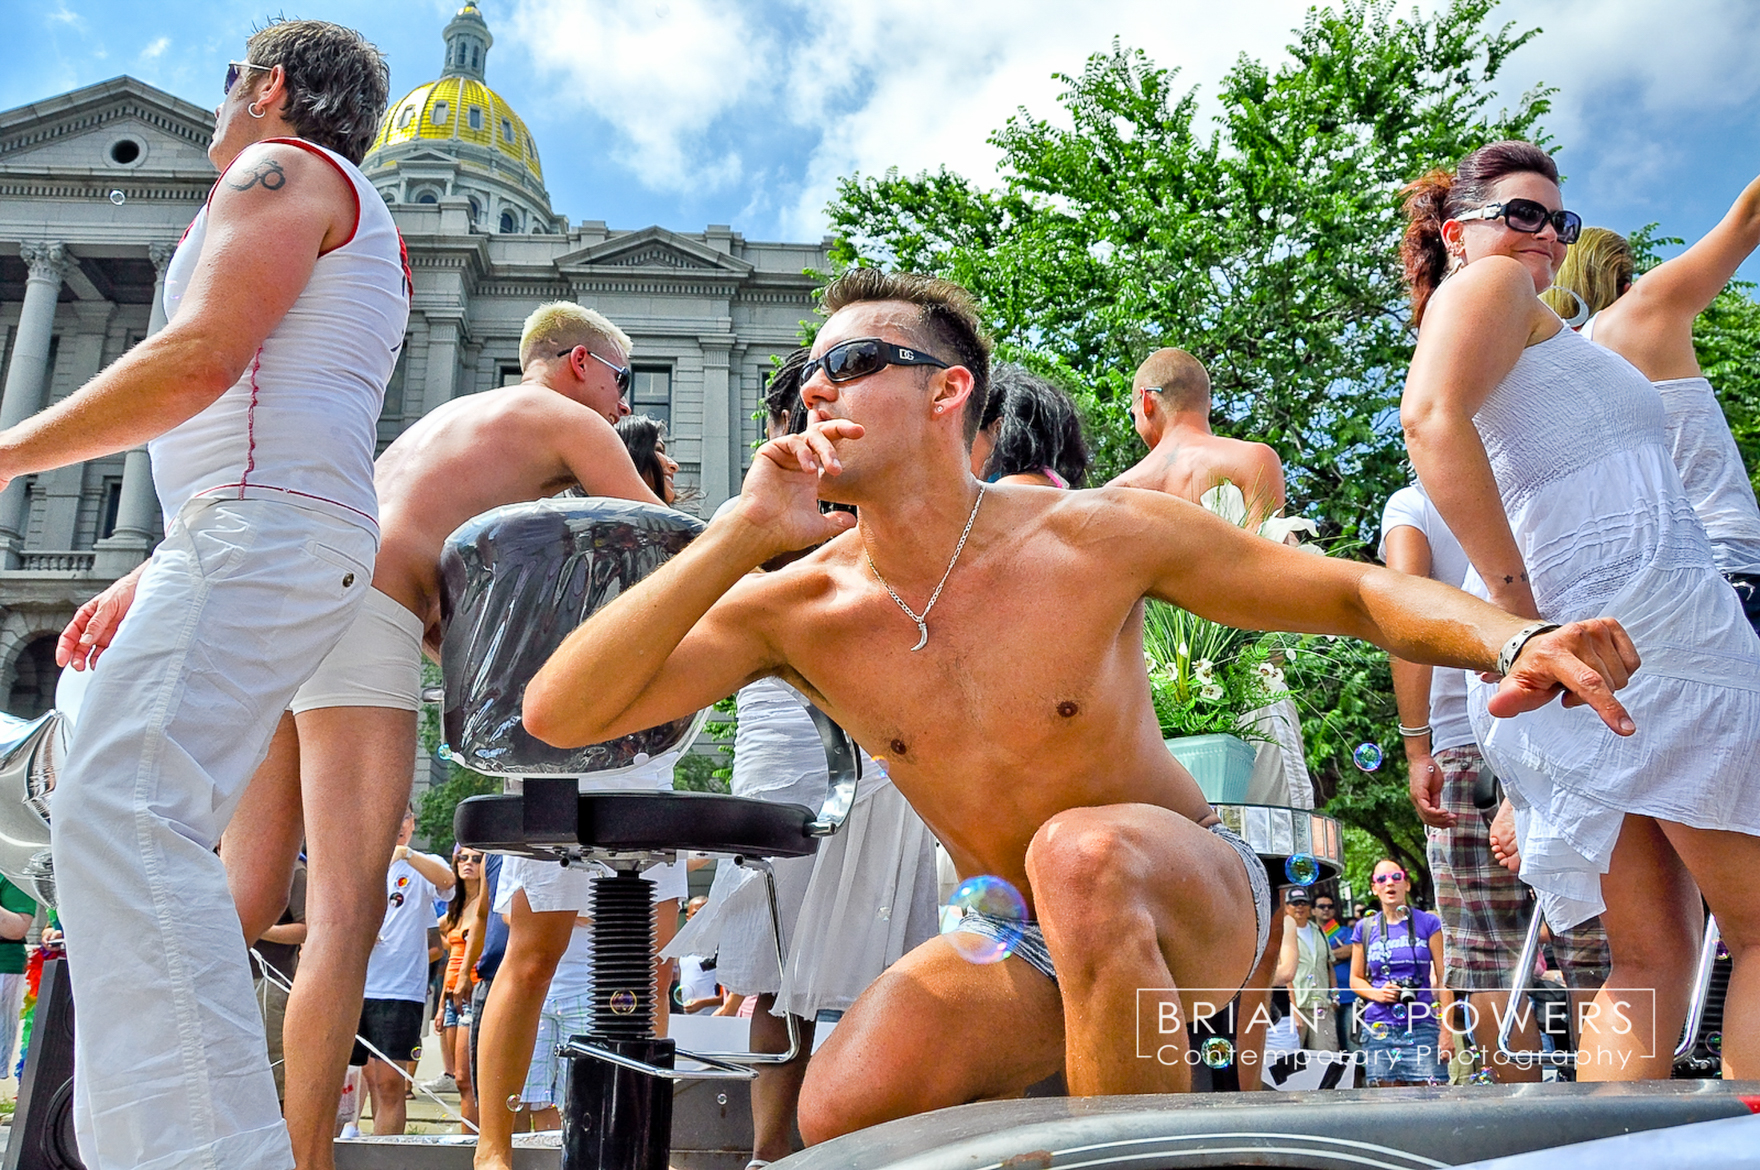 BrianK Powers Photography_Denver Colorado Gay Pride Parade_013.jpg